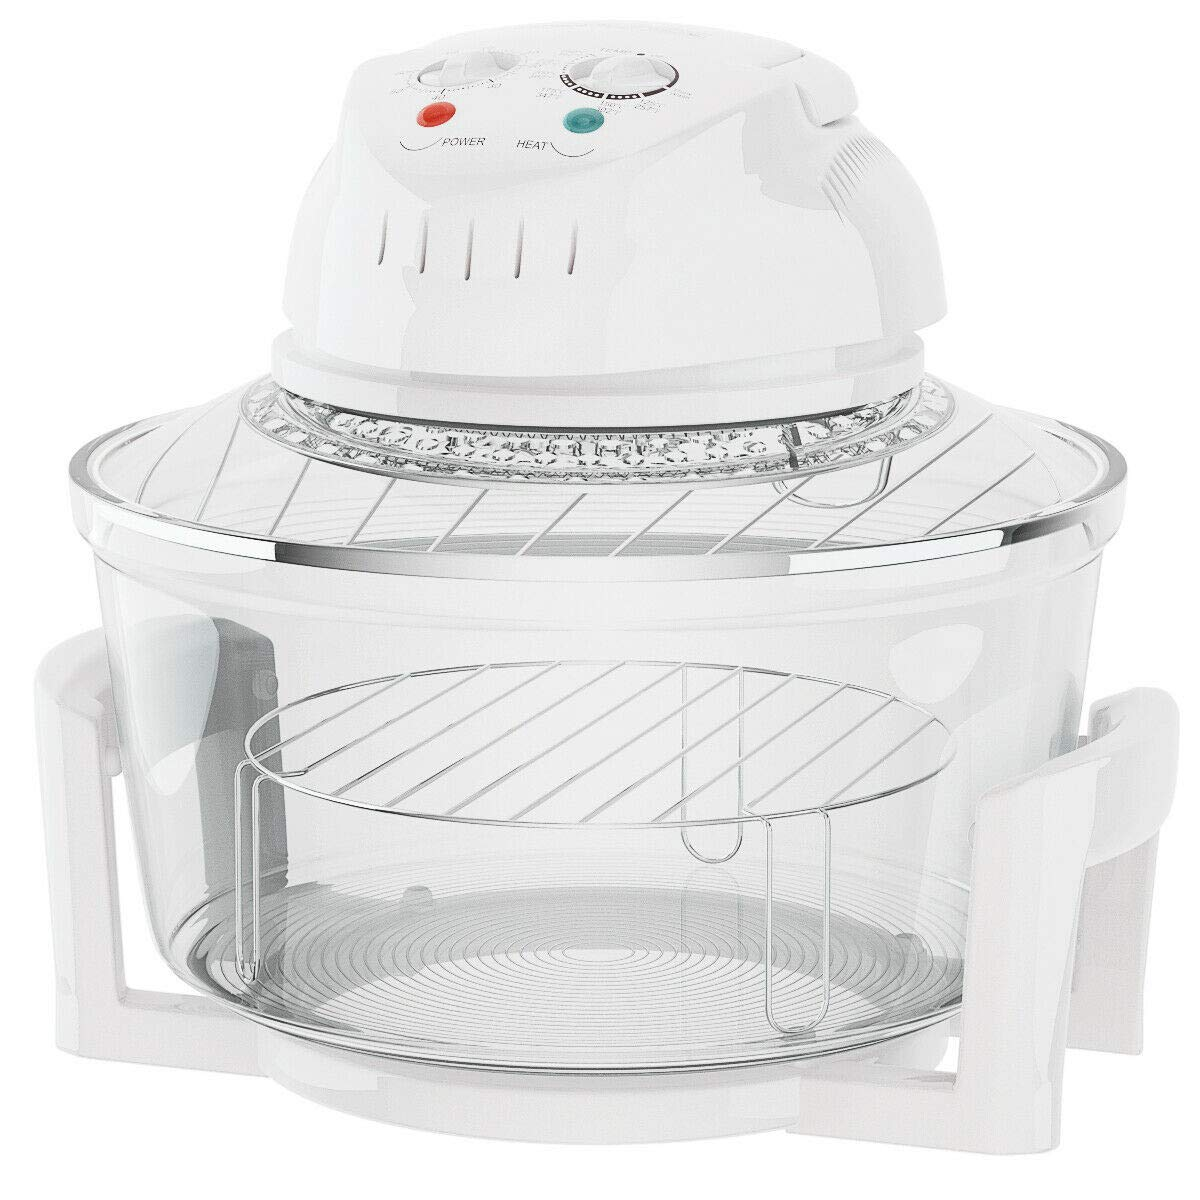 Cypress Shop Halogen Oven Convection Turbo Infrared Oven Cooker1300 Watt Cooking Glass Bowl 12-17 Liters For Roast Bake Broil Stream Fry Food Kitchen Tools Utensil Tools Safe Clean Home Stuffs